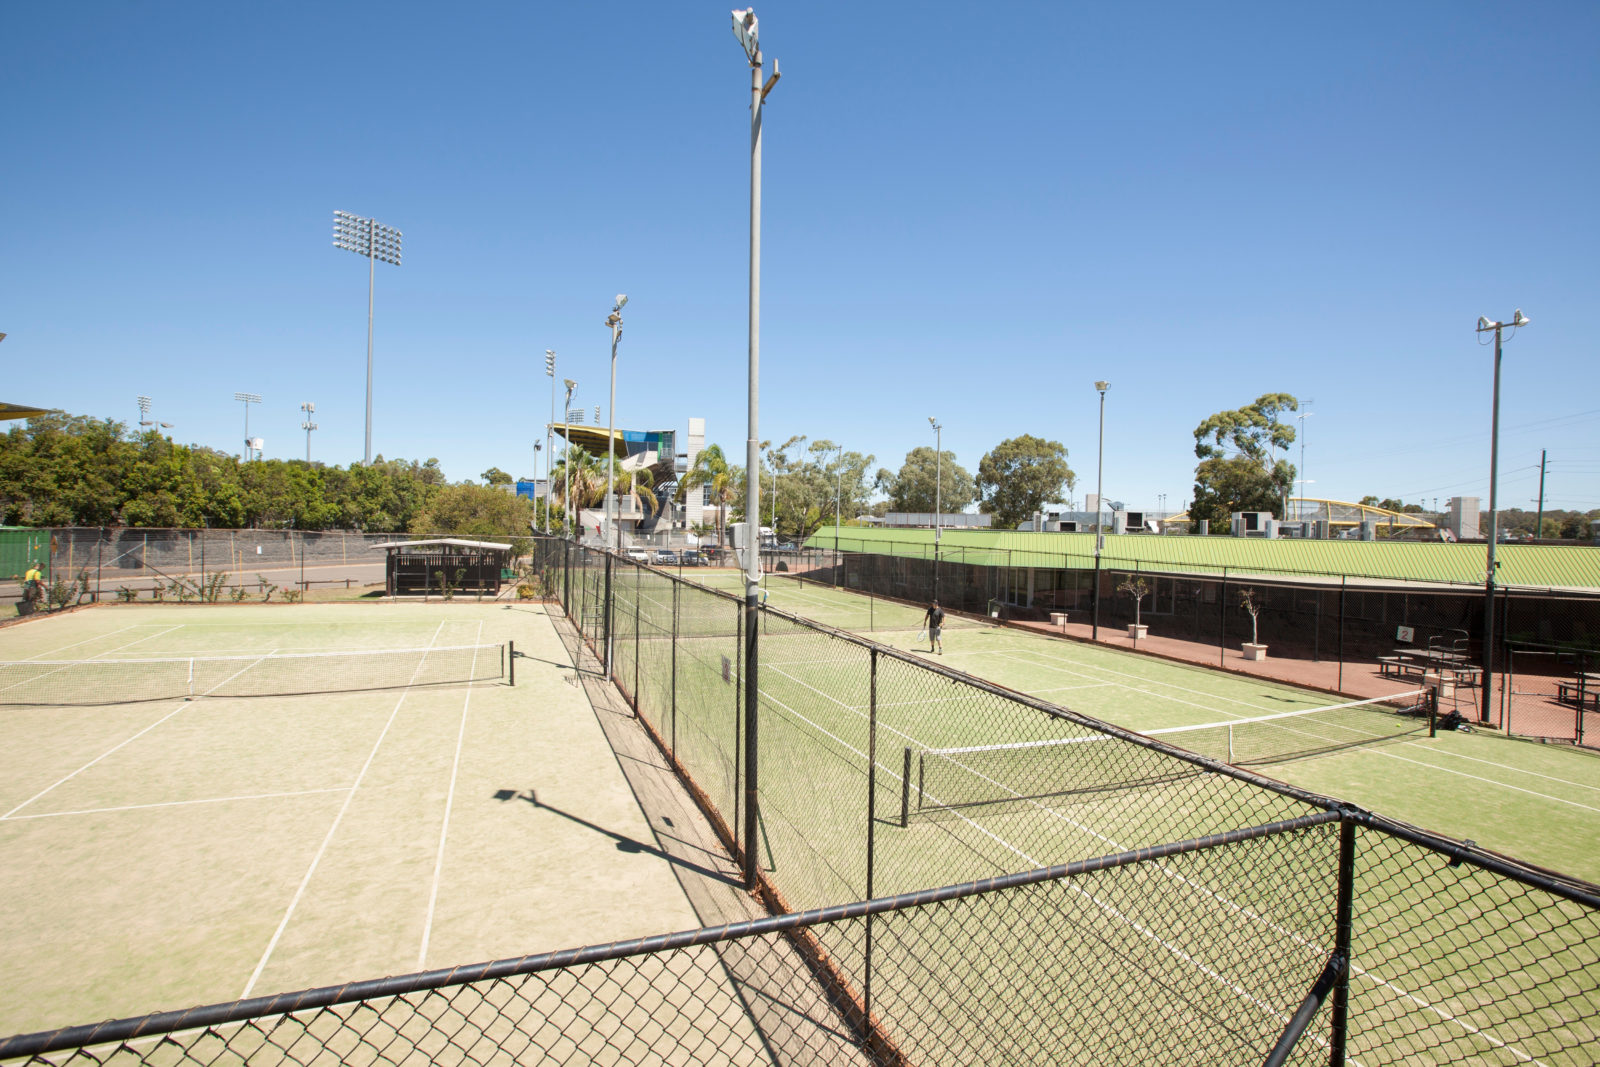 Wests Tennis Club